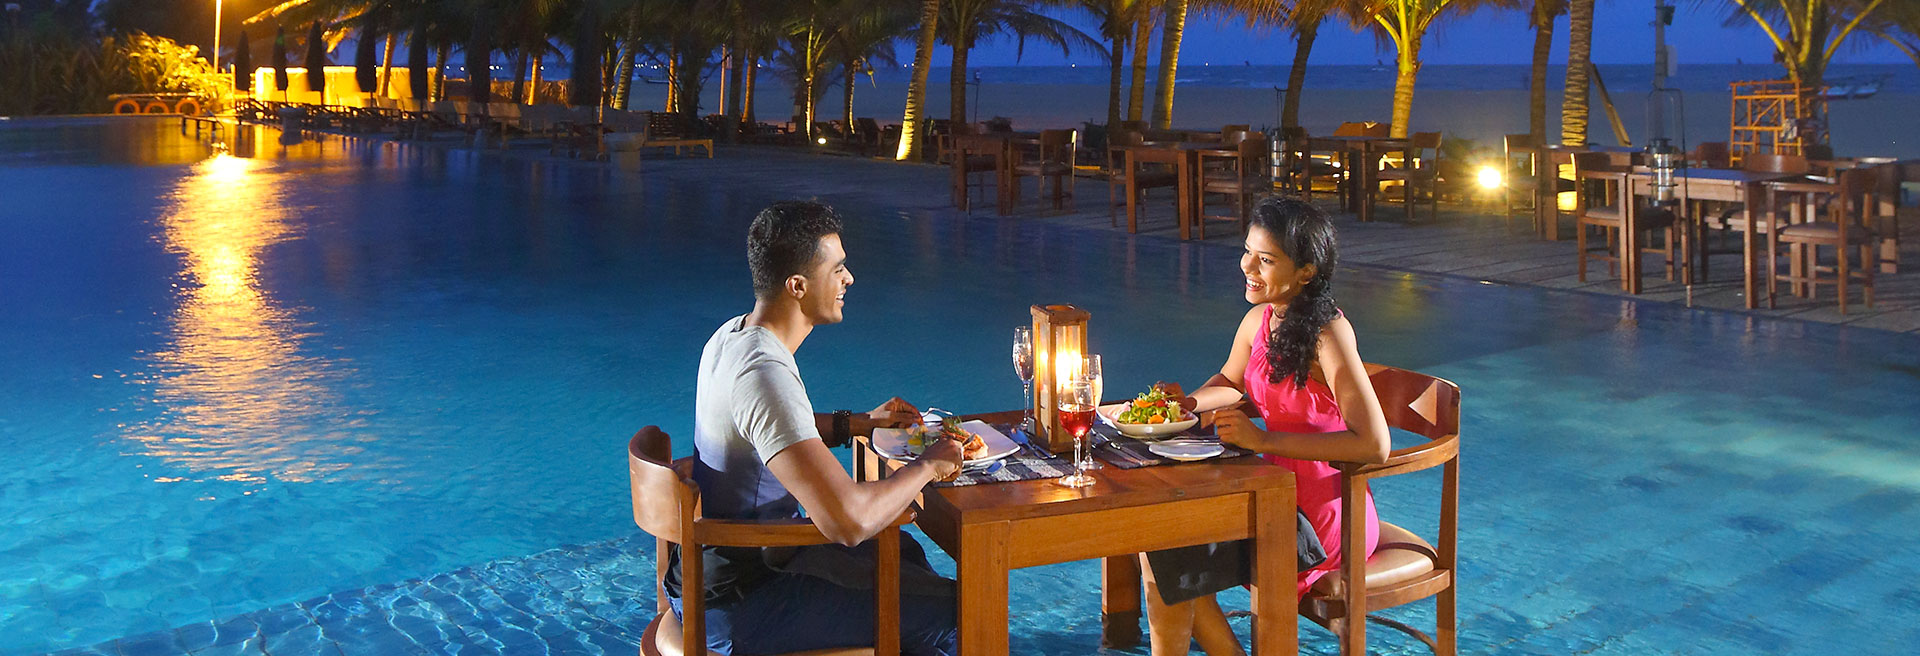 A romantic candlelit dinner by the pool